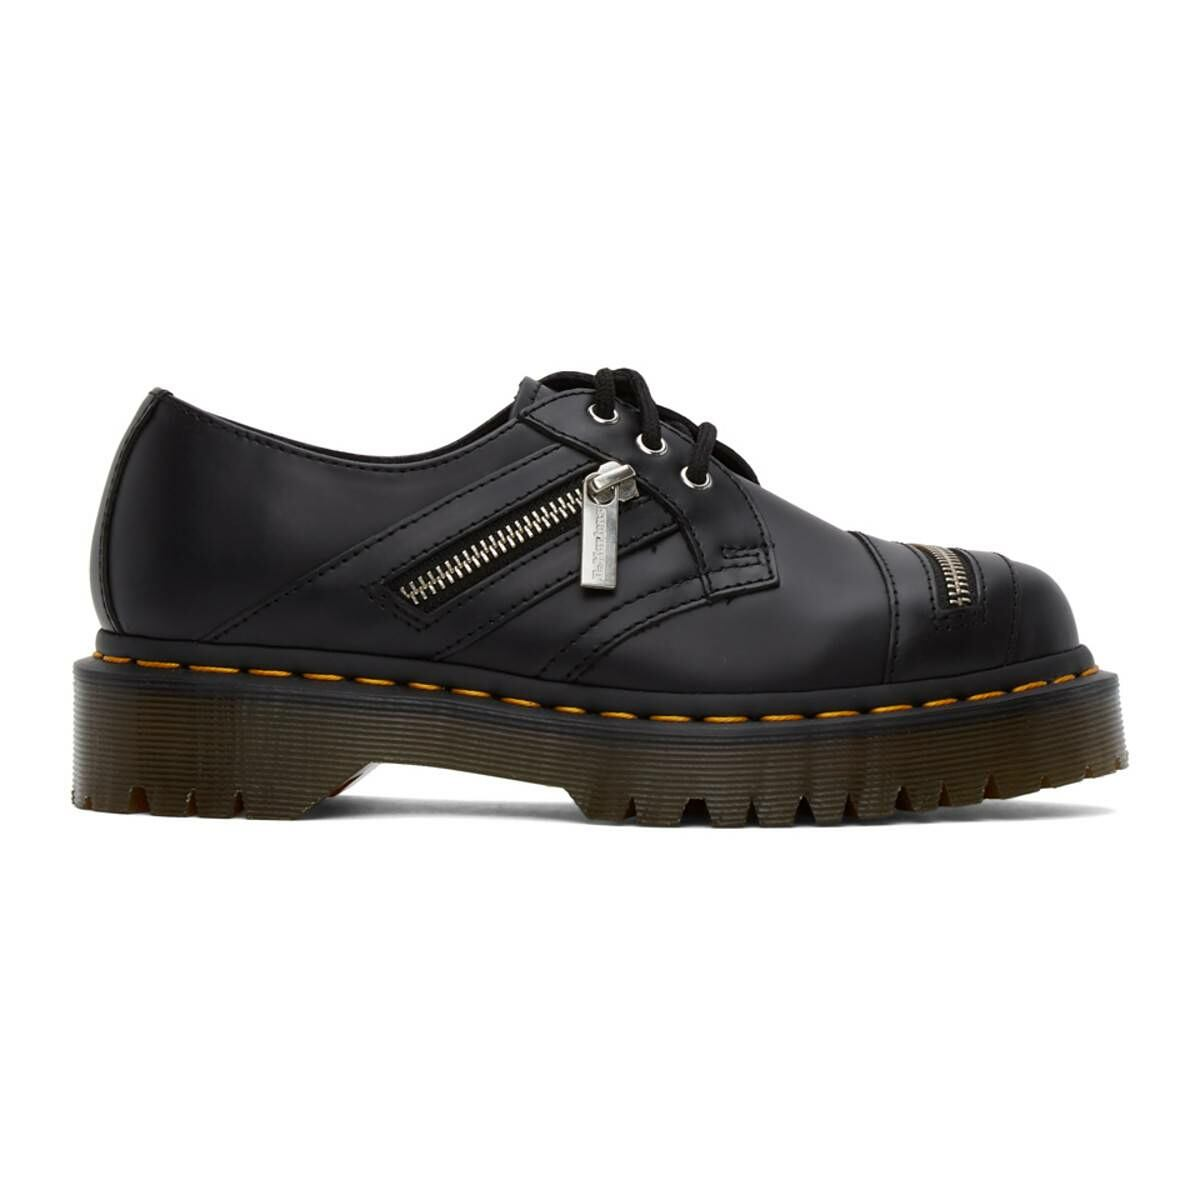 Dr. Martens Black 1461 Bex Zip Derbys Ssense USA WOMEN Women SHOES Womens LEATHER SHOES